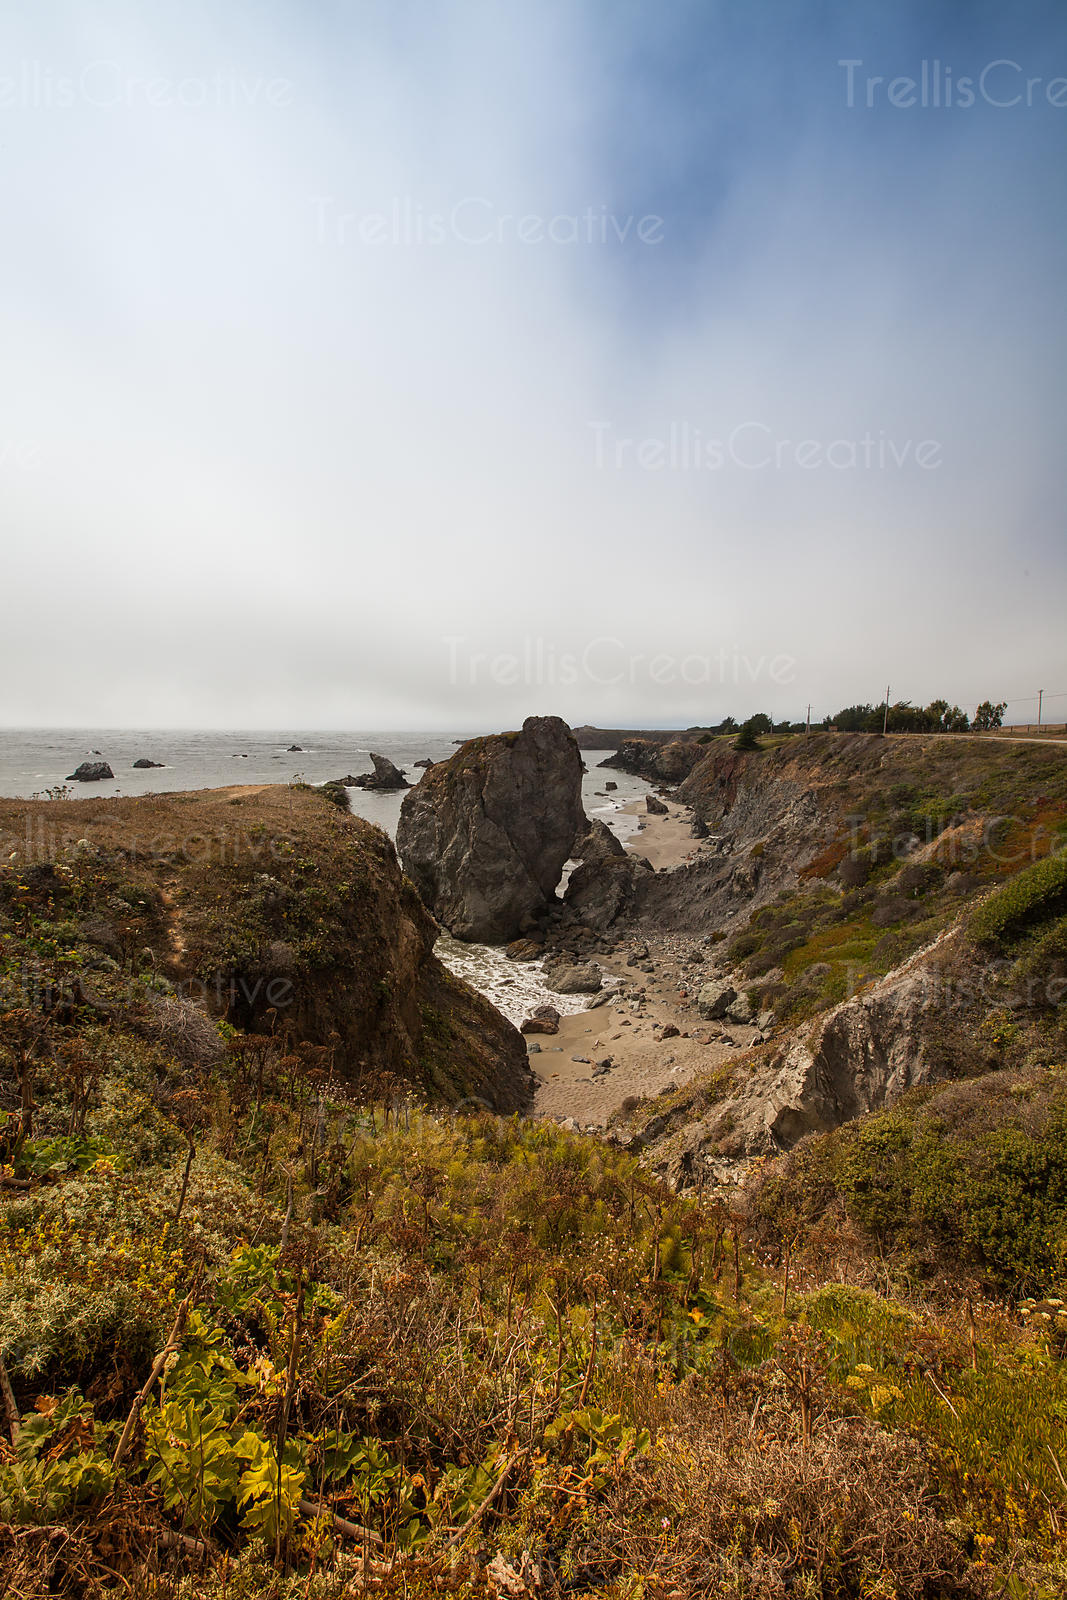 A Northern California coastal sandy beach off of Highway 1.